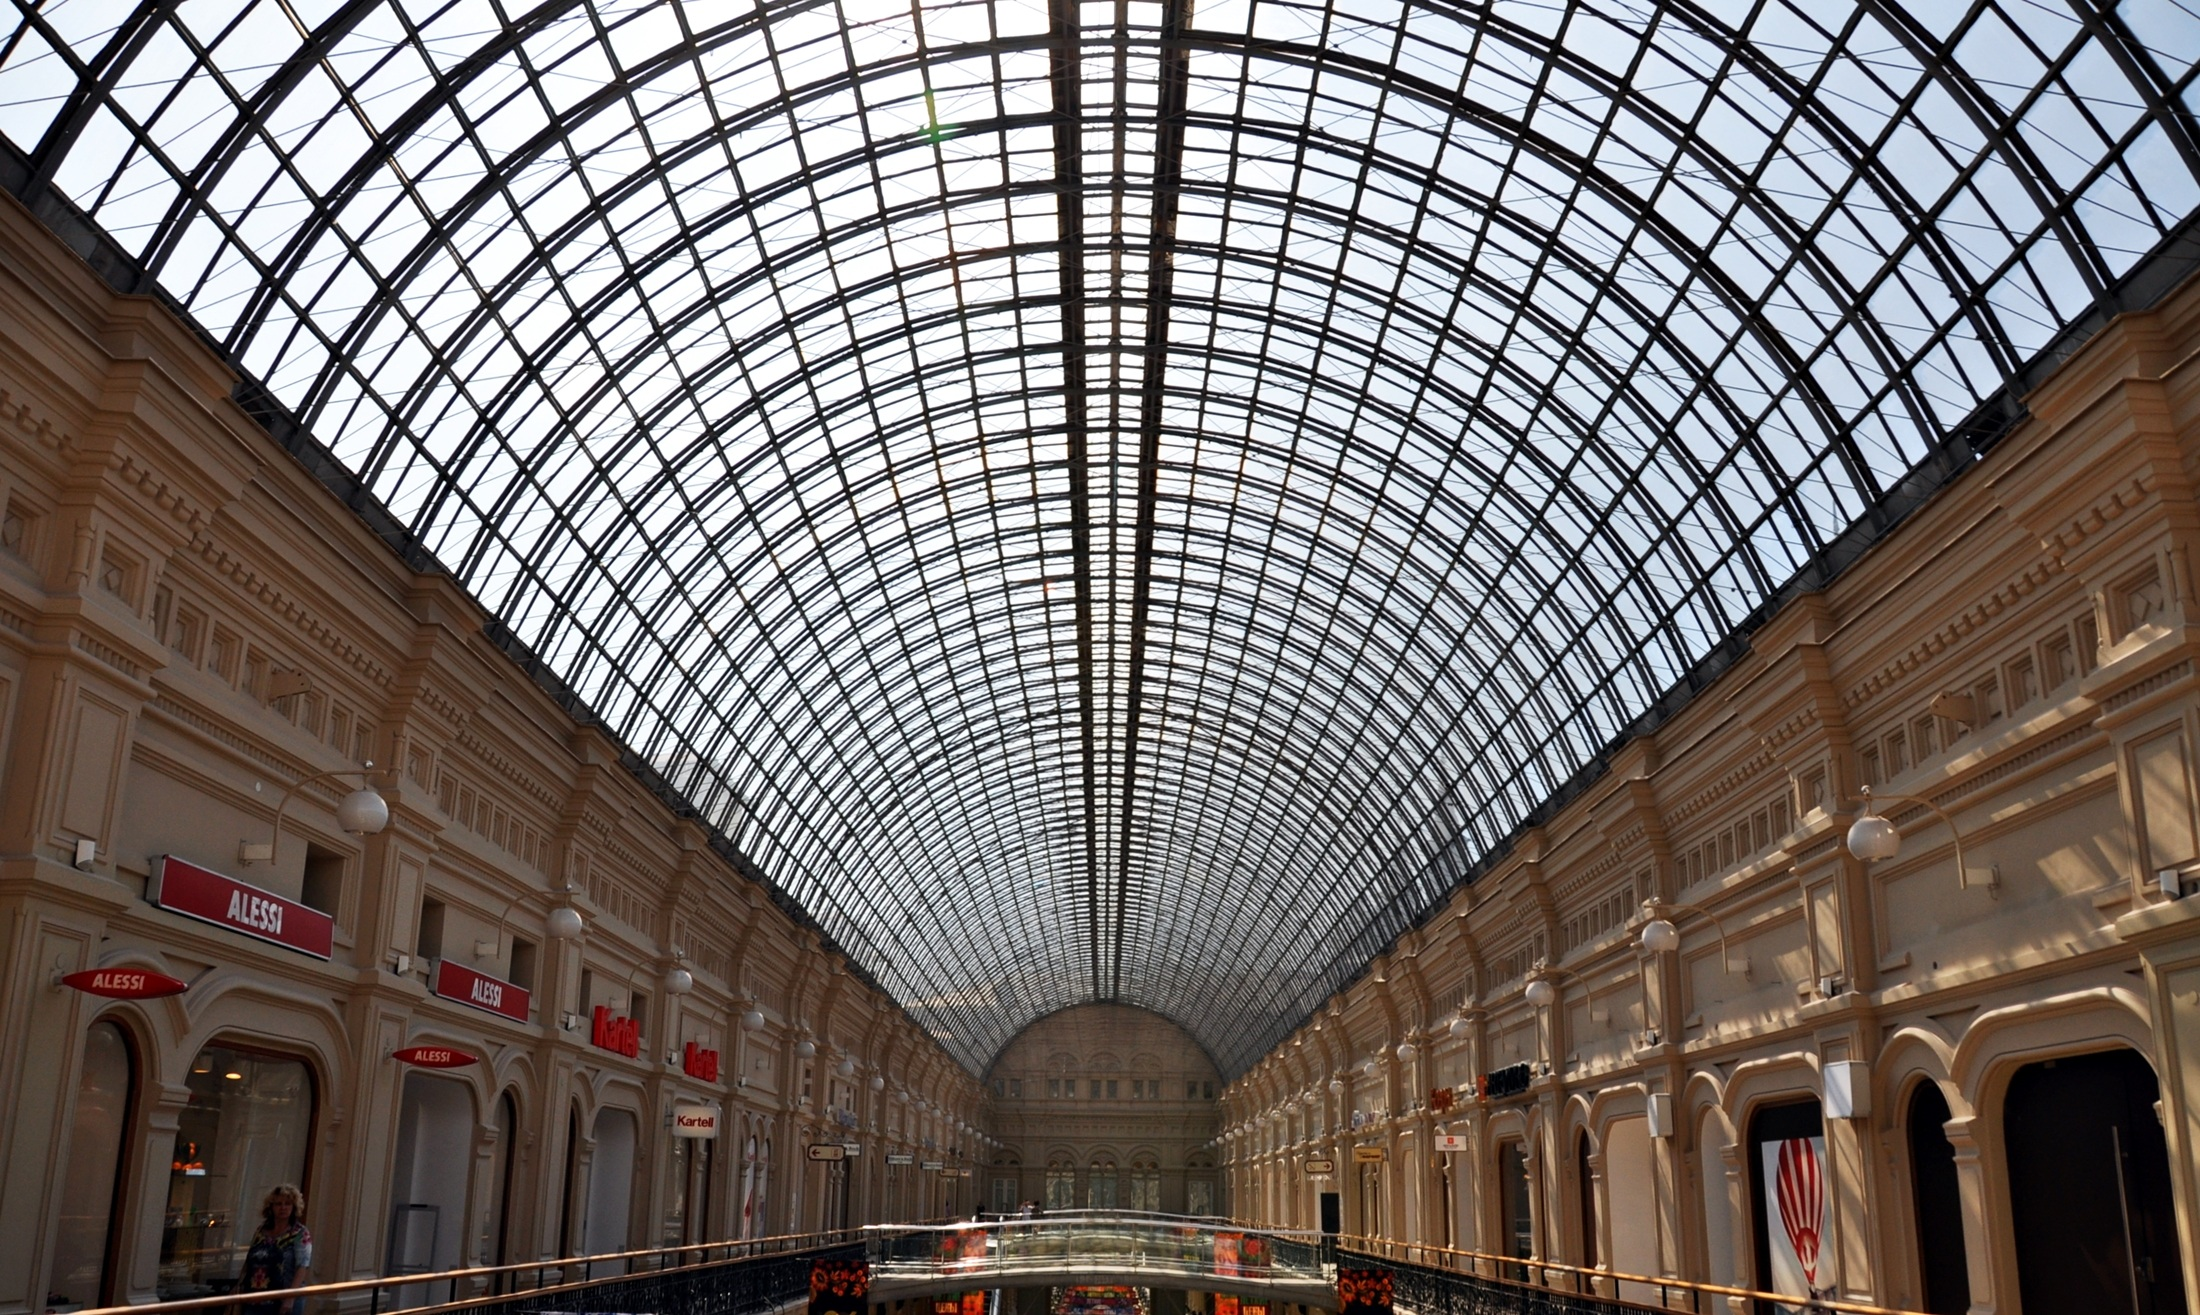 Unusual Architecture Of A Building With Round Glass Roof